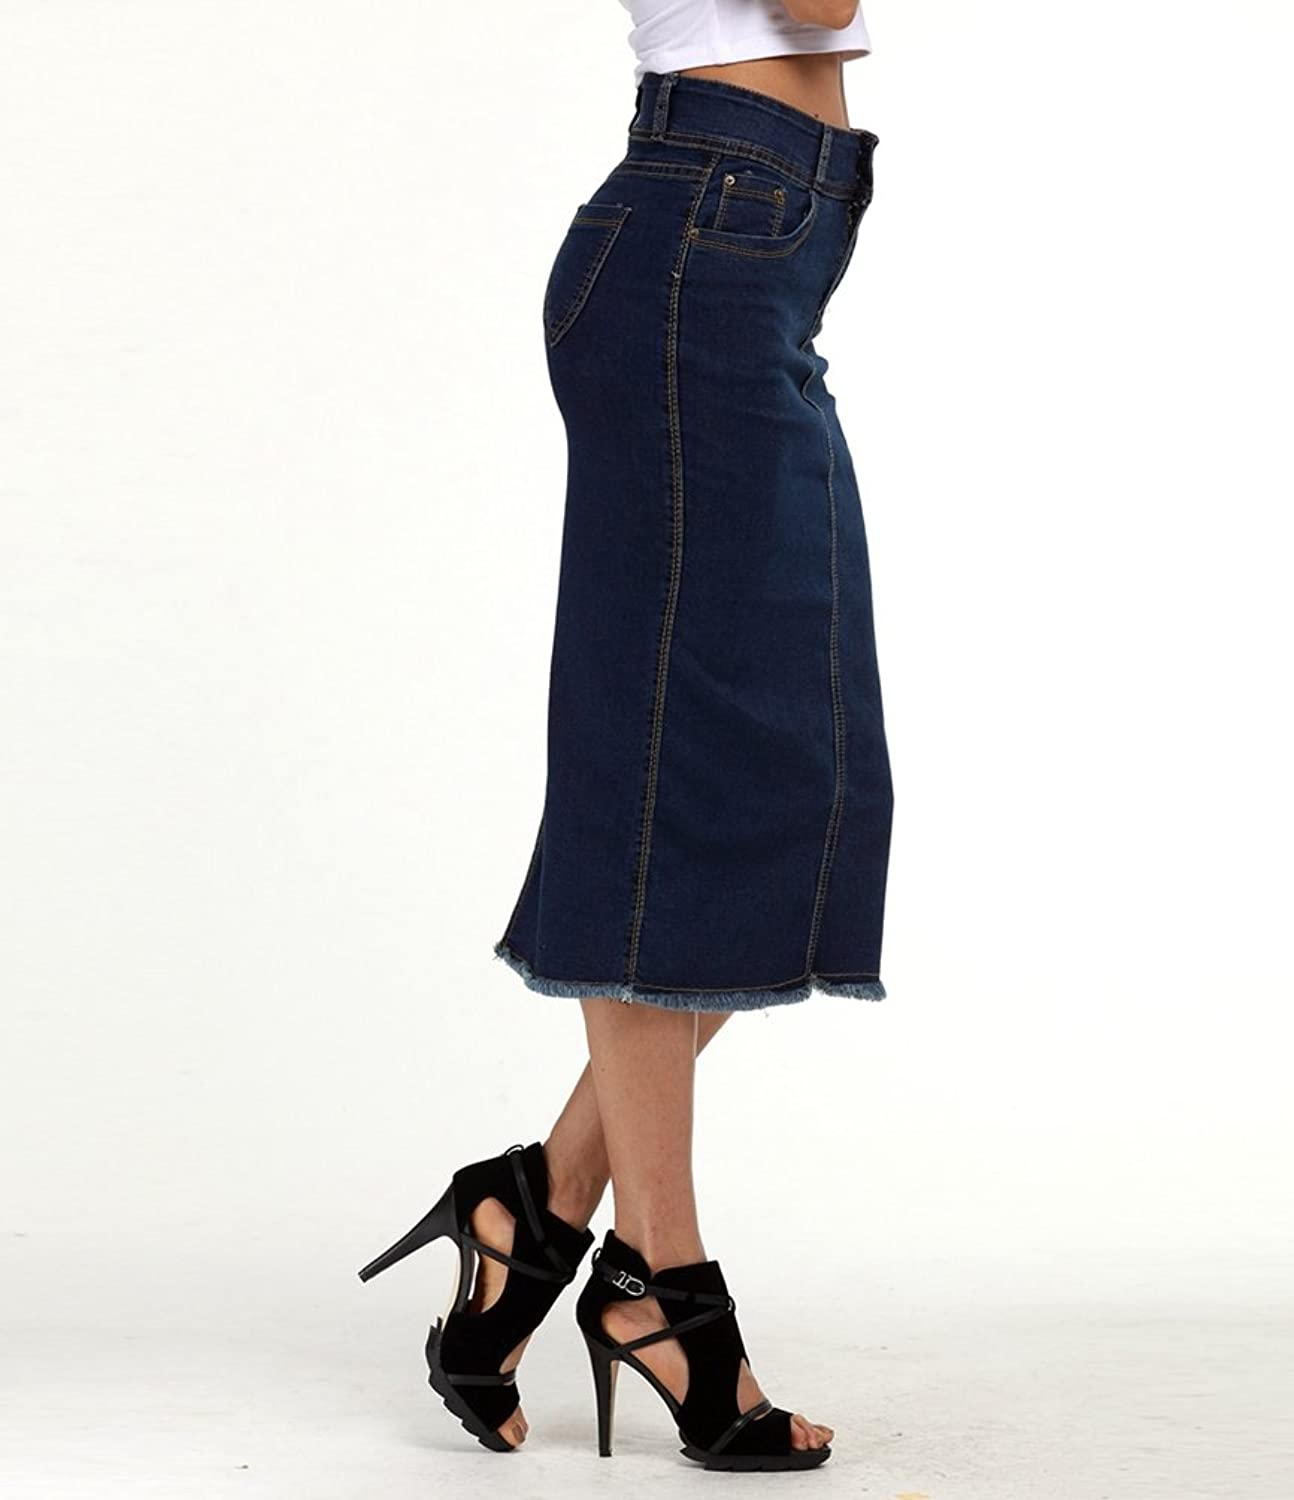 WanYang Womens Plus Size S,M,L,XL,2XL,3XL,4XL Denim High Waisted Jean Skirt  Long Denim Skirts for Ladies Denim Pencil Skirt Long Jean Skirts:  Amazon.co.uk: ...